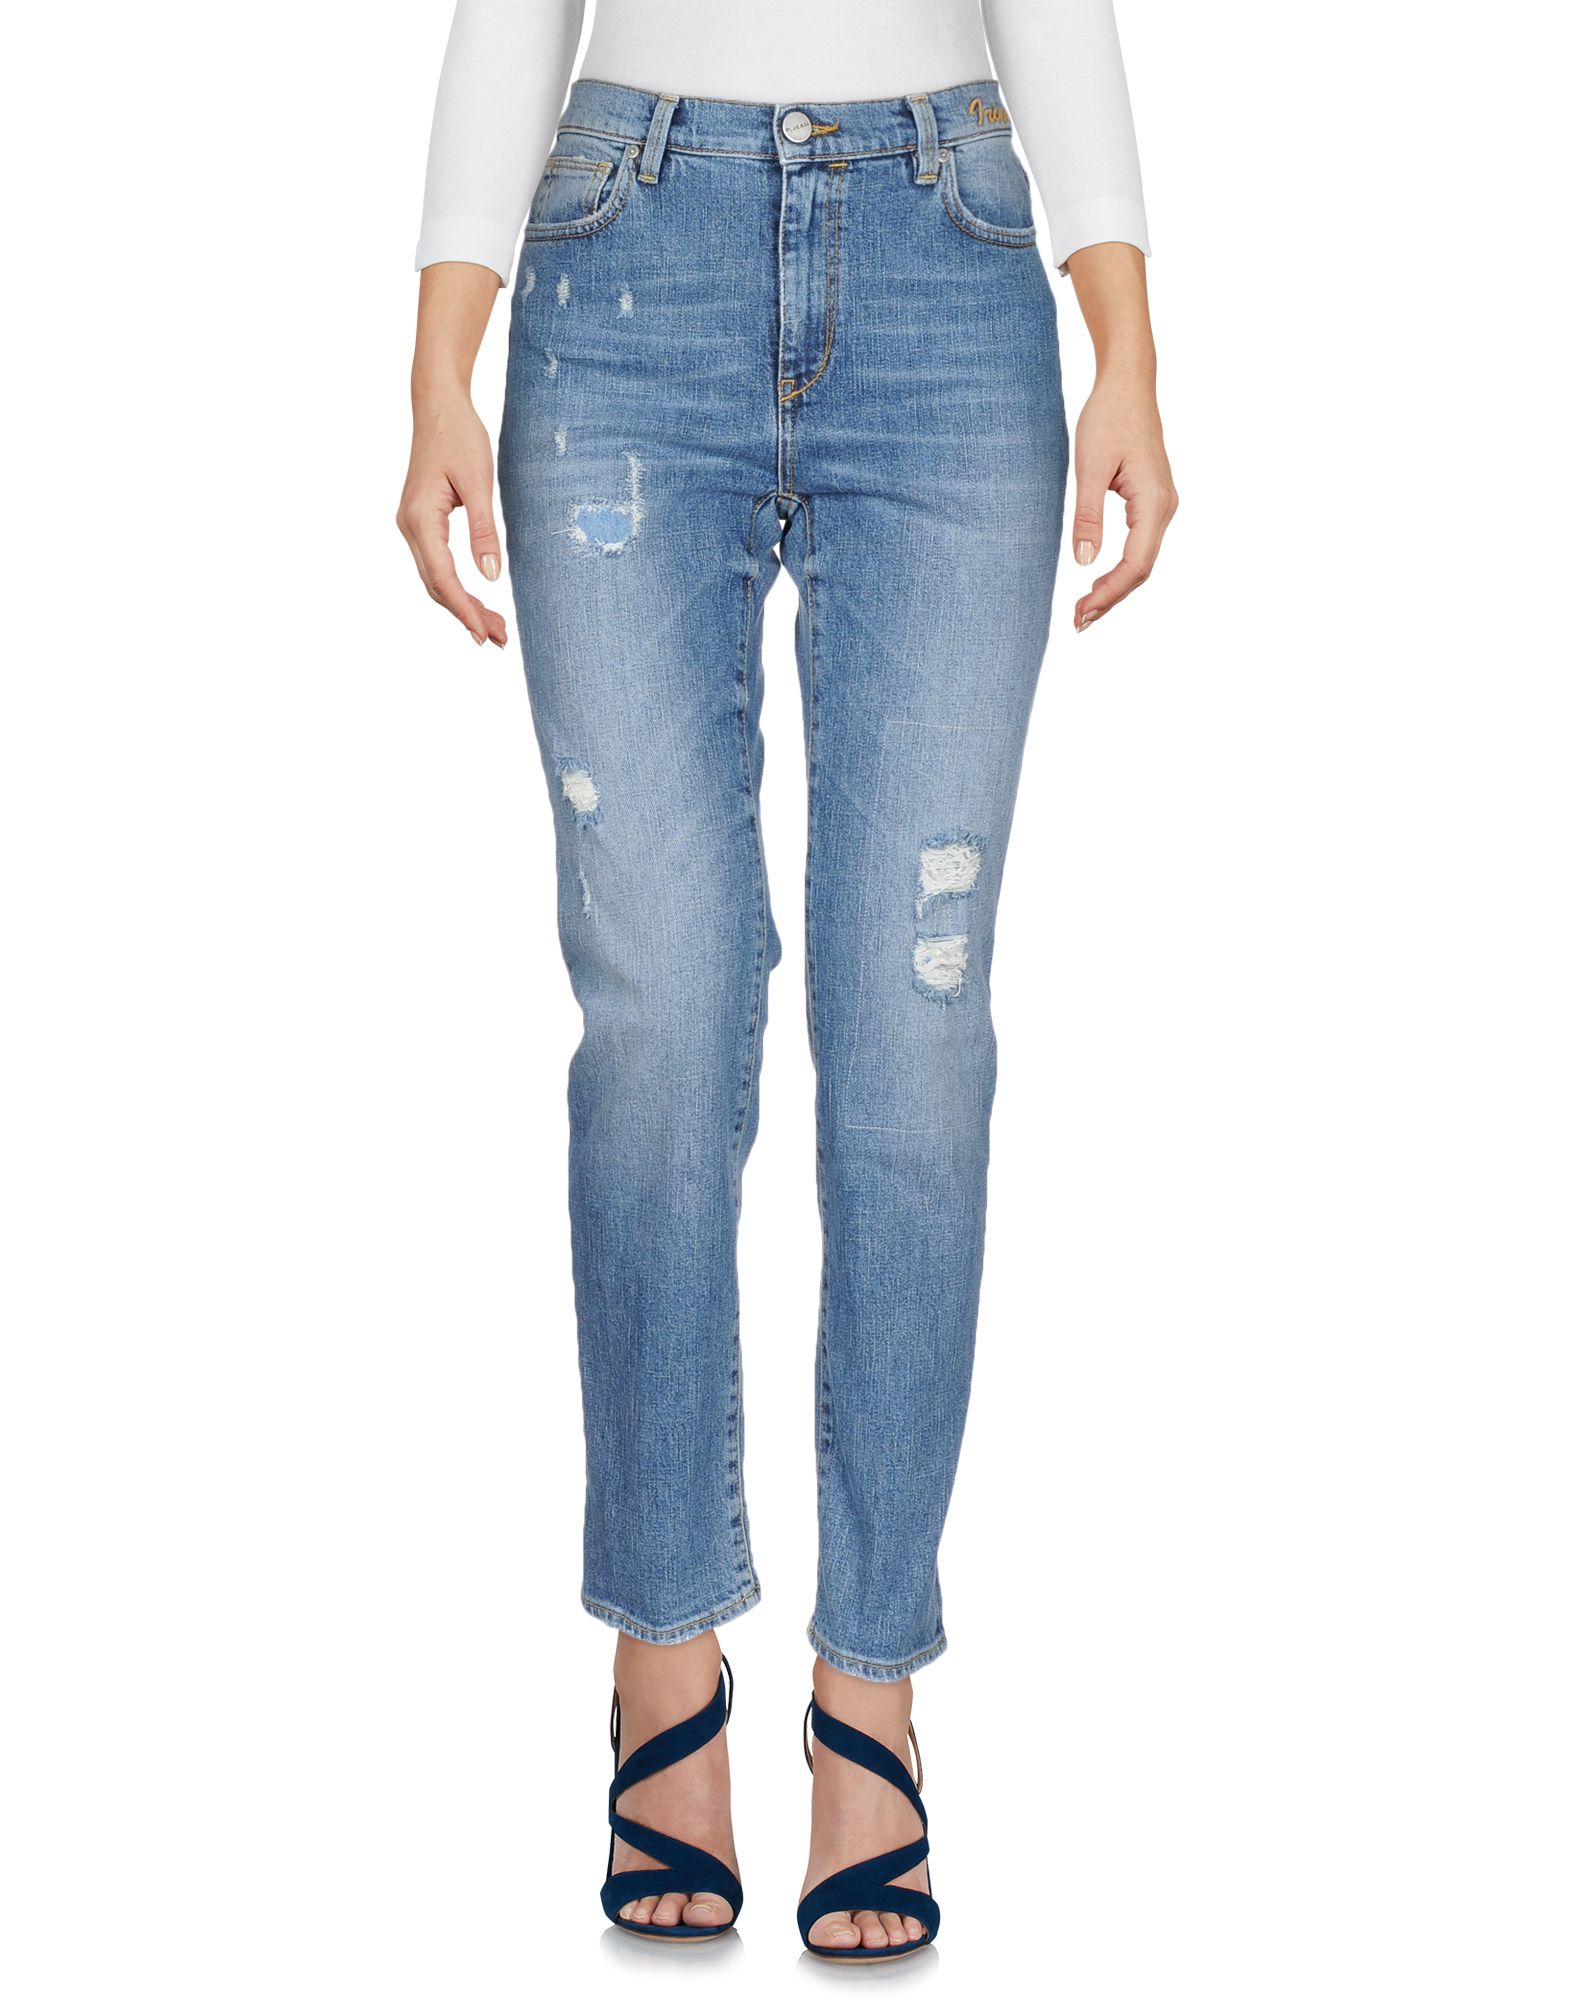 P JEAN Denim pants - Item 42669996